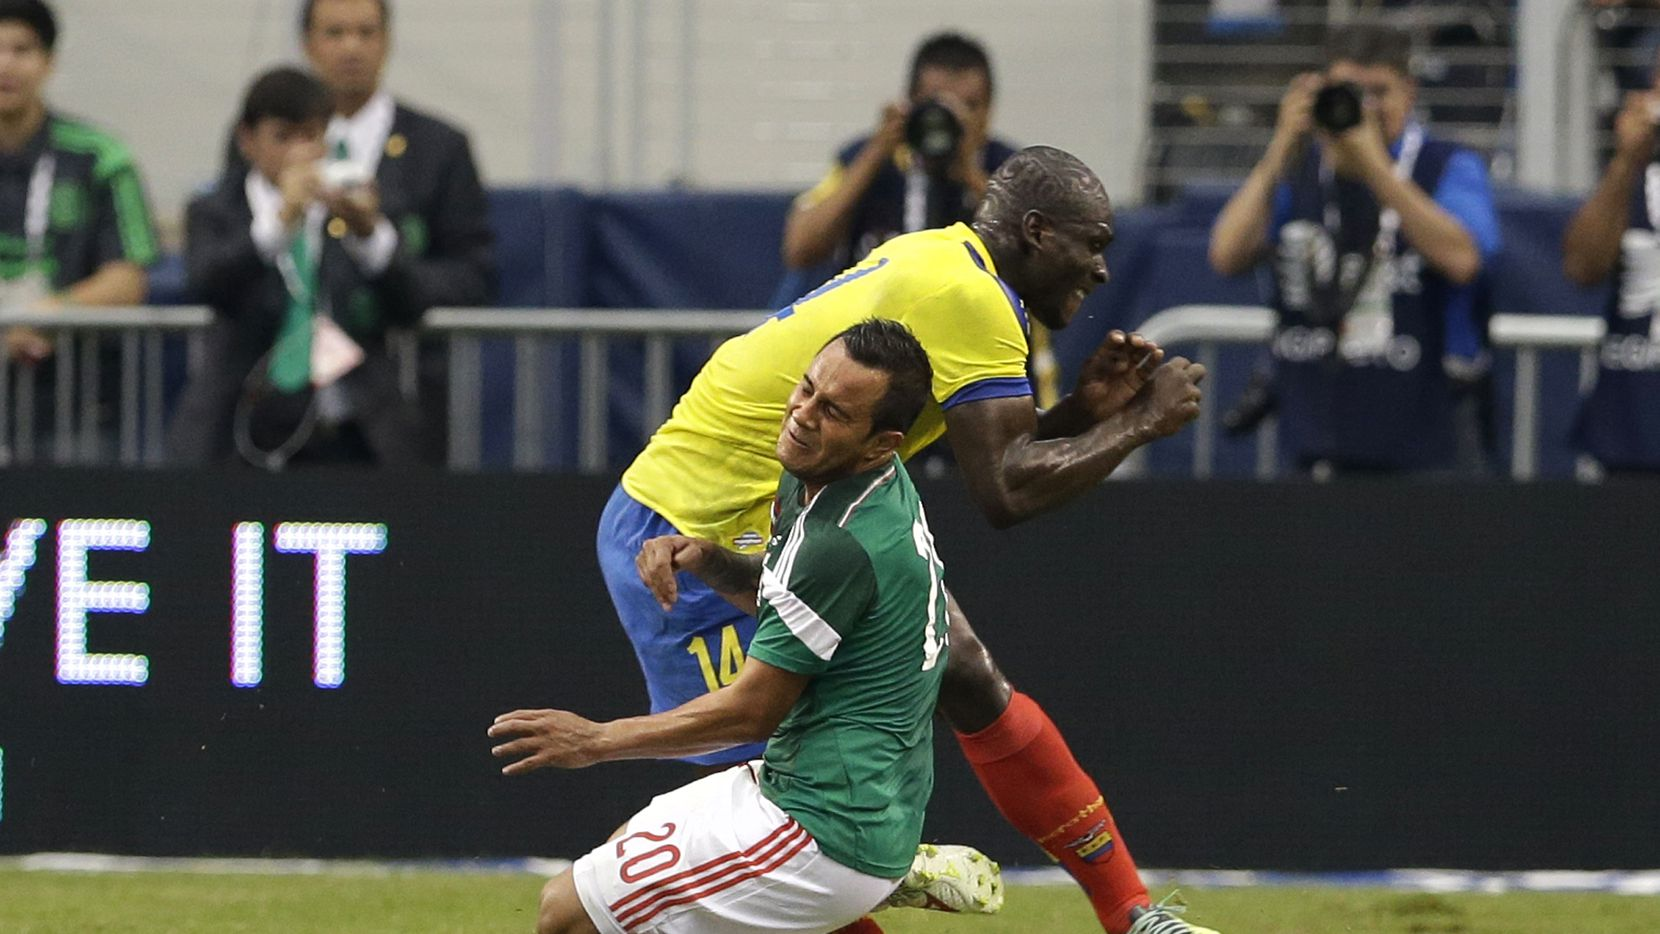 Mexico's Luis Montes collides with Ecuador's Segundo Castillo, rear, as the two were competing for the ball during the first half of a friendly soccer match, Saturday, May 31, 2014, in Arlington, Texas. Montes, who took the brunt of the collision was stretchered off the pitch after fracturing his right tibia and fibula. (AP Photo/Tony Gutierrez) 04112015xALDIA